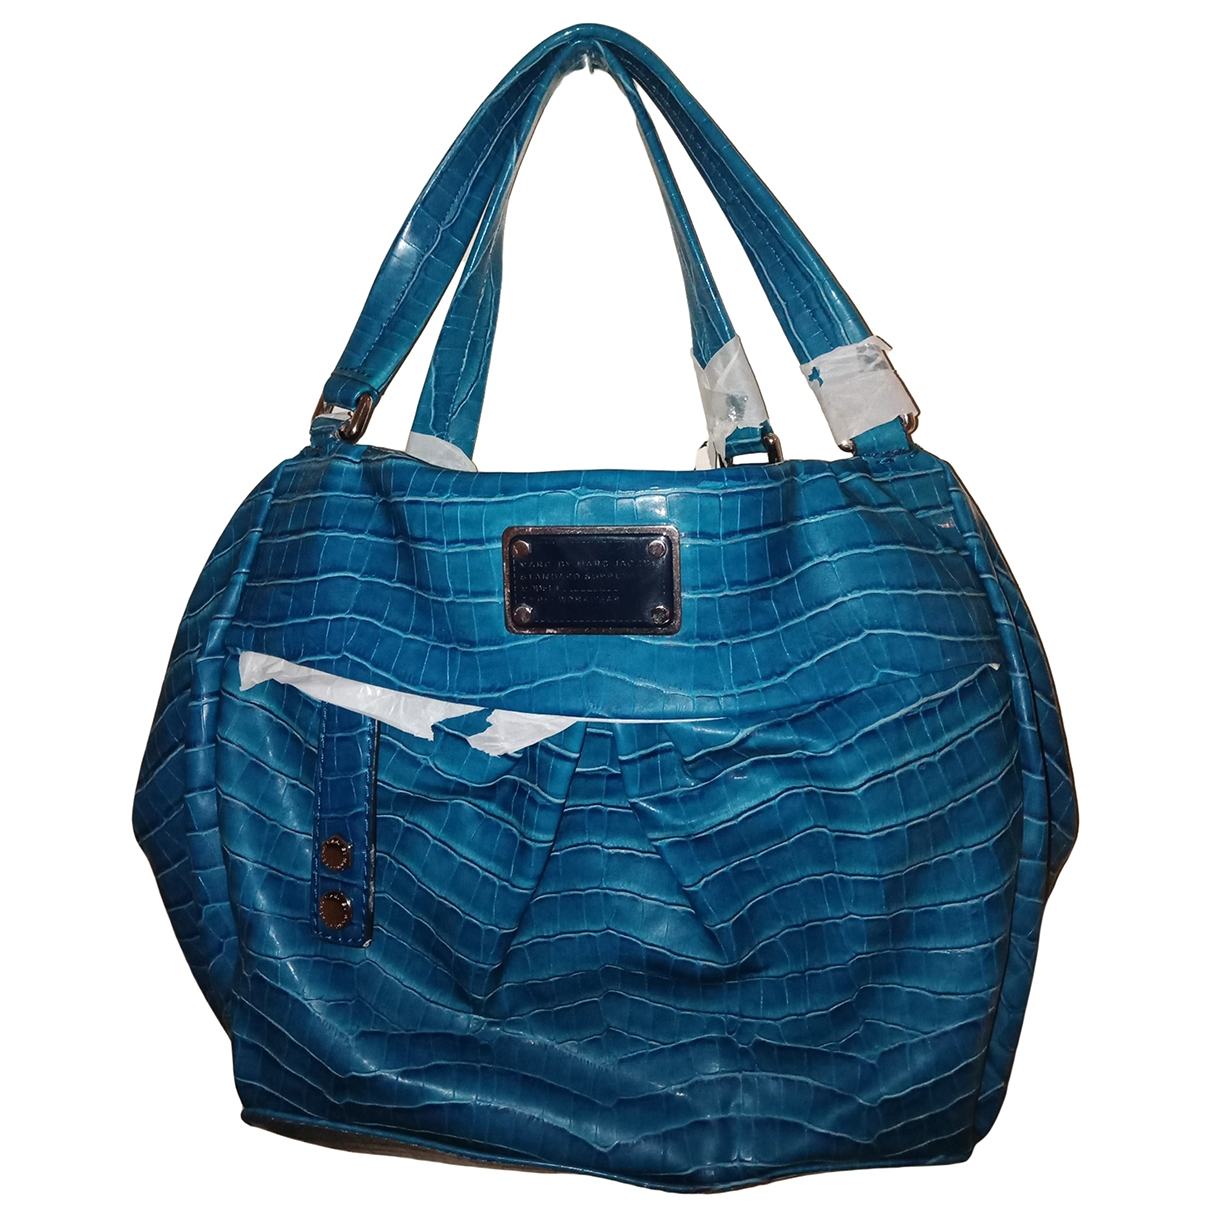 Marc By Marc Jacobs \N Turquoise Leather handbag for Women \N